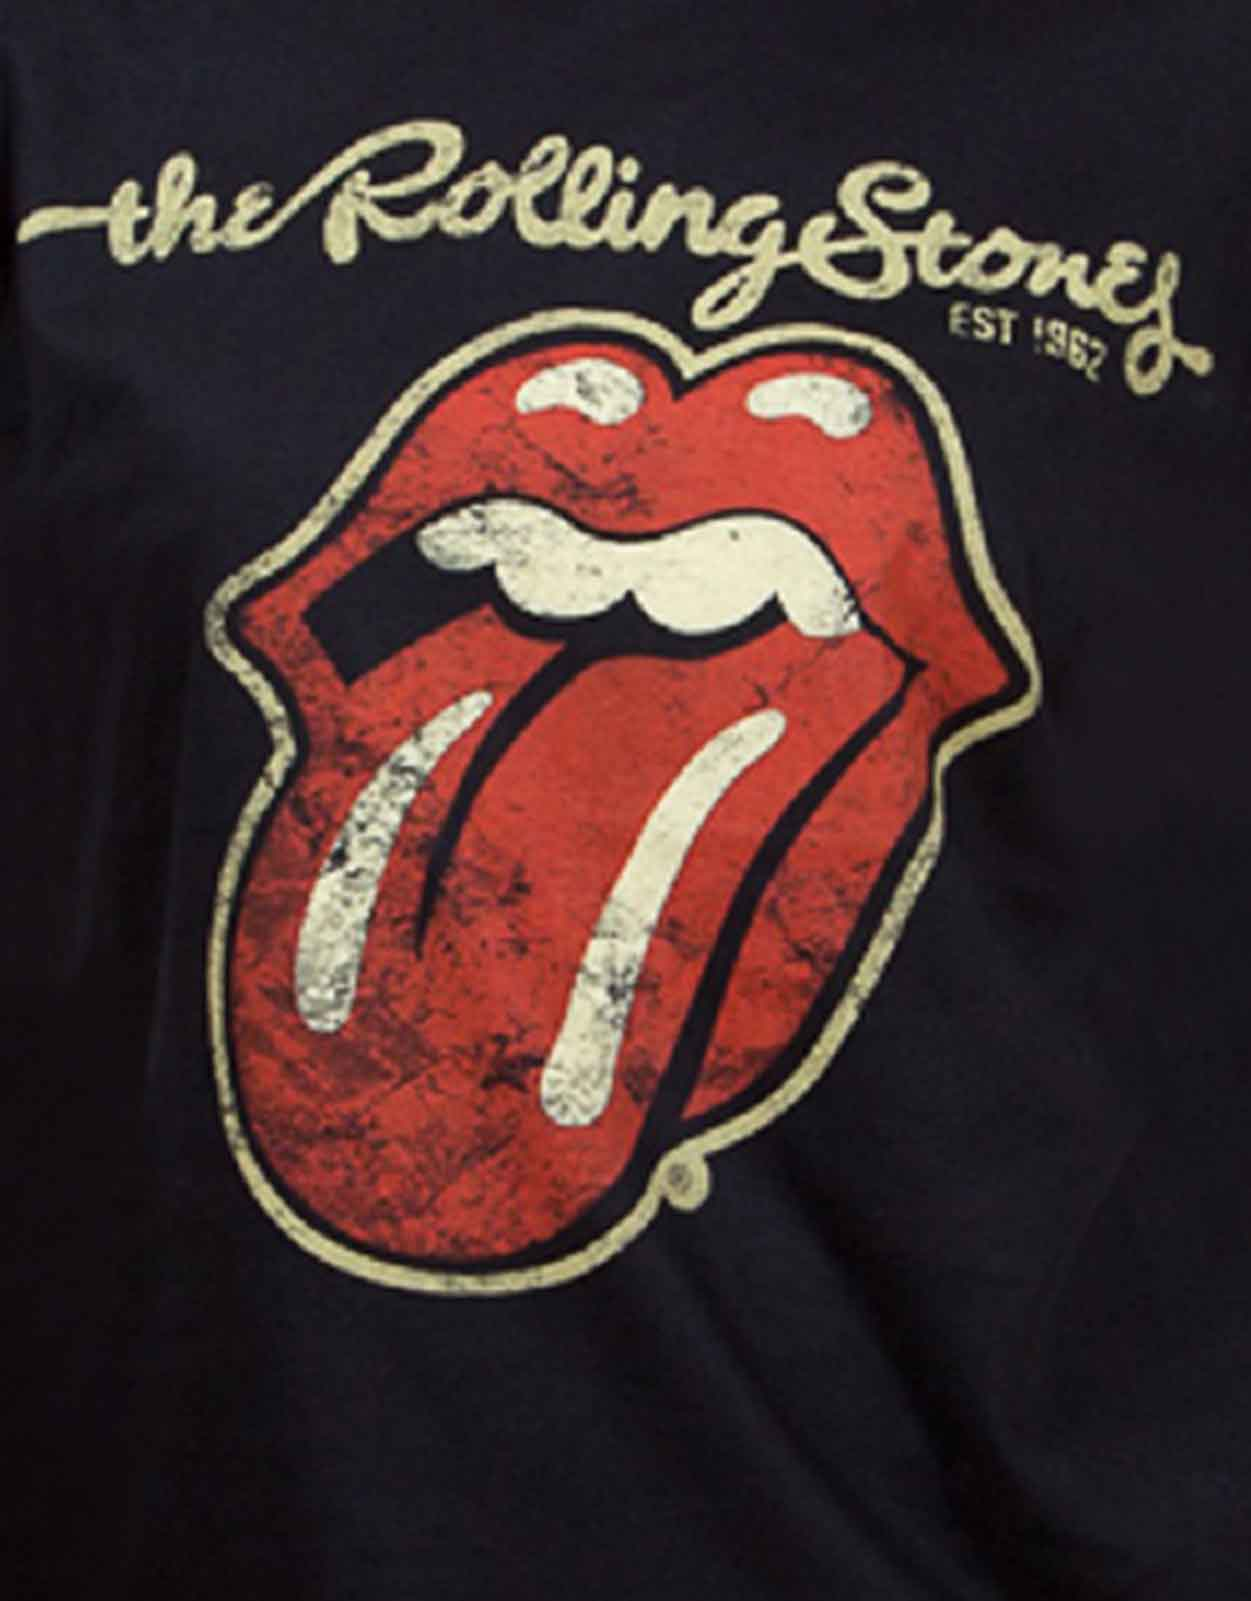 The-Rolling-Stones-T-Shirt-womens-tongue-band-logo-new-official-skinny-fit miniatura 5